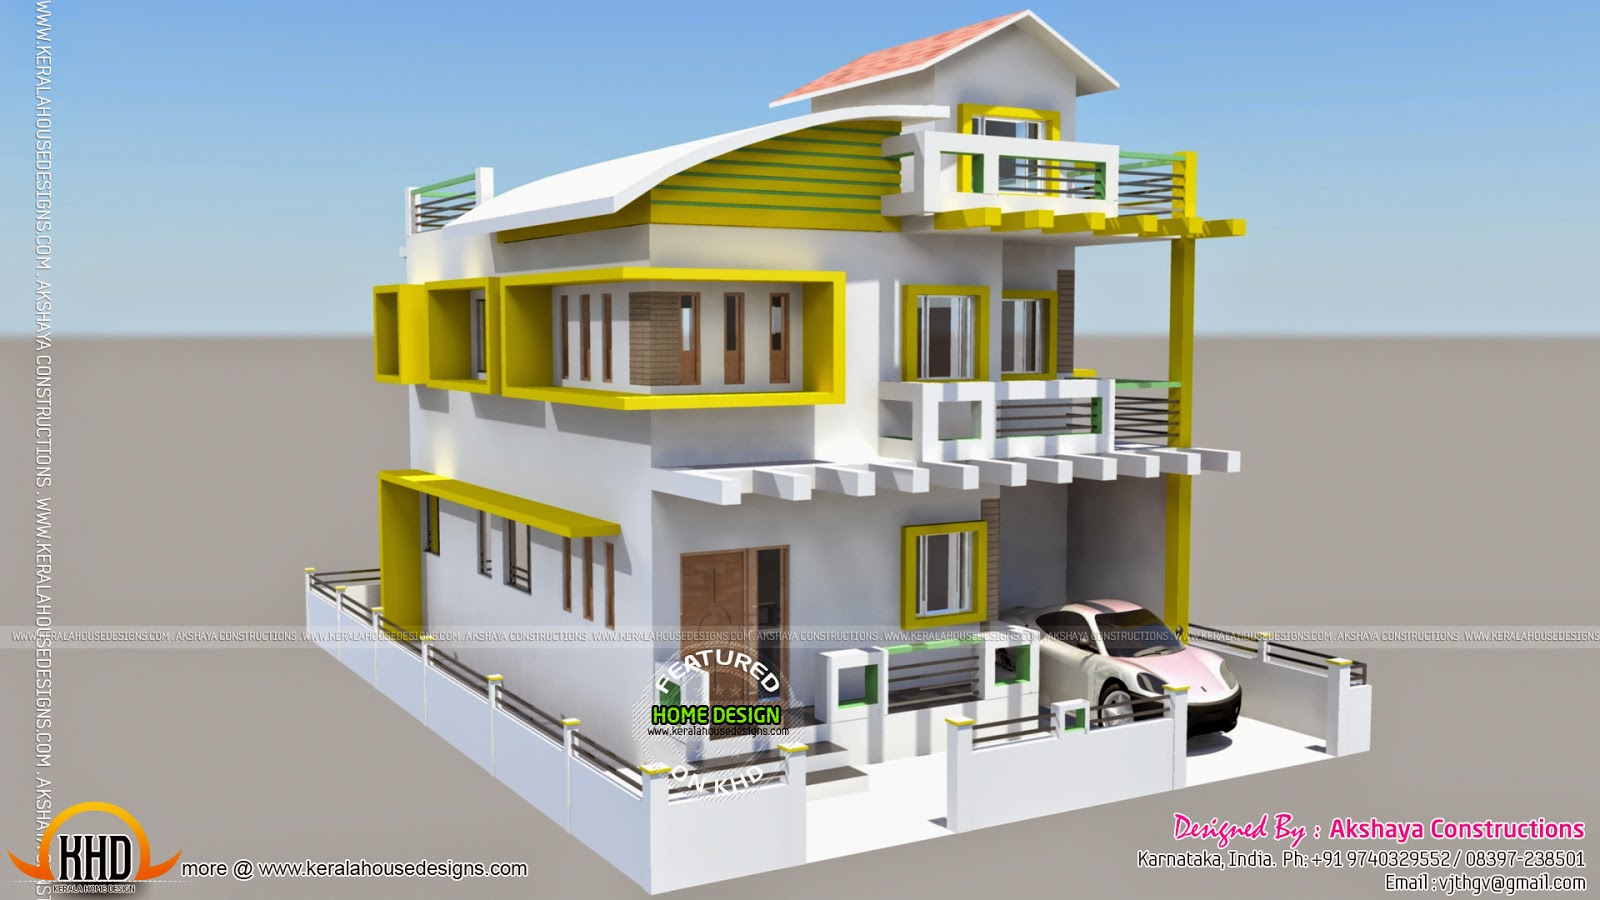 Karnataka home design kerala home design and floor plans for Building houses with side views